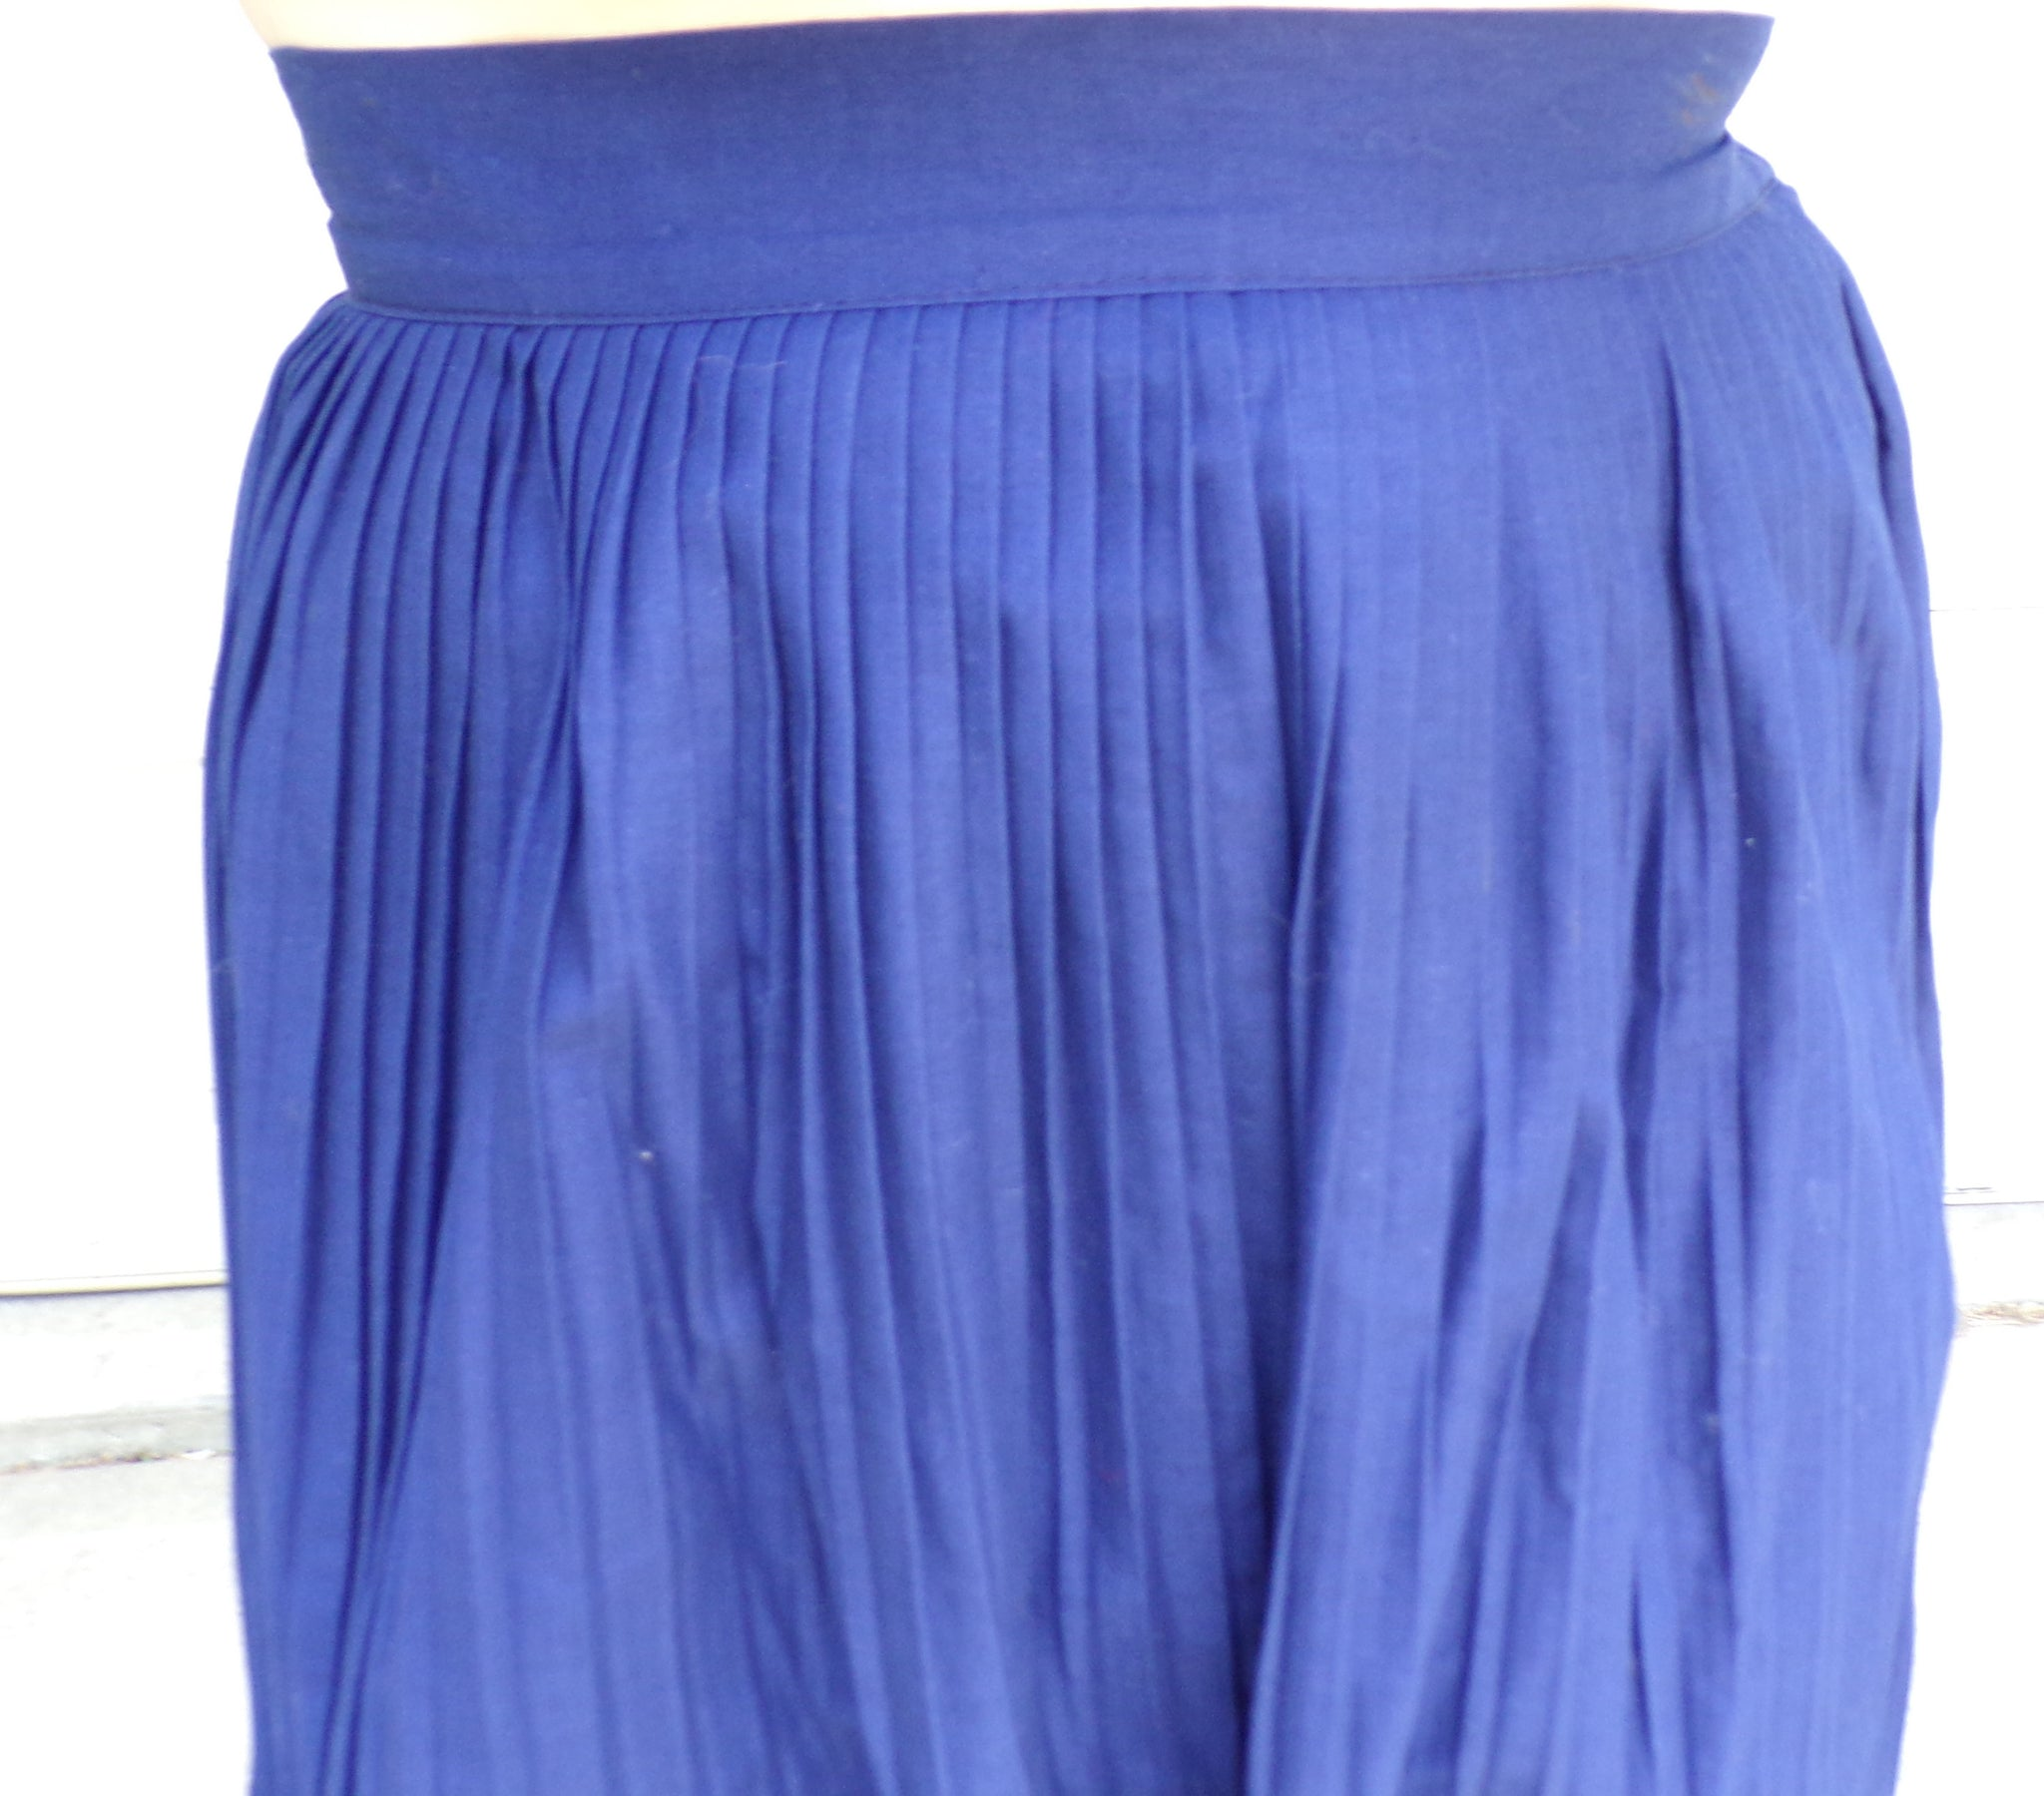 FINELY PLEATED SKIRT navy blue midi S (B1)